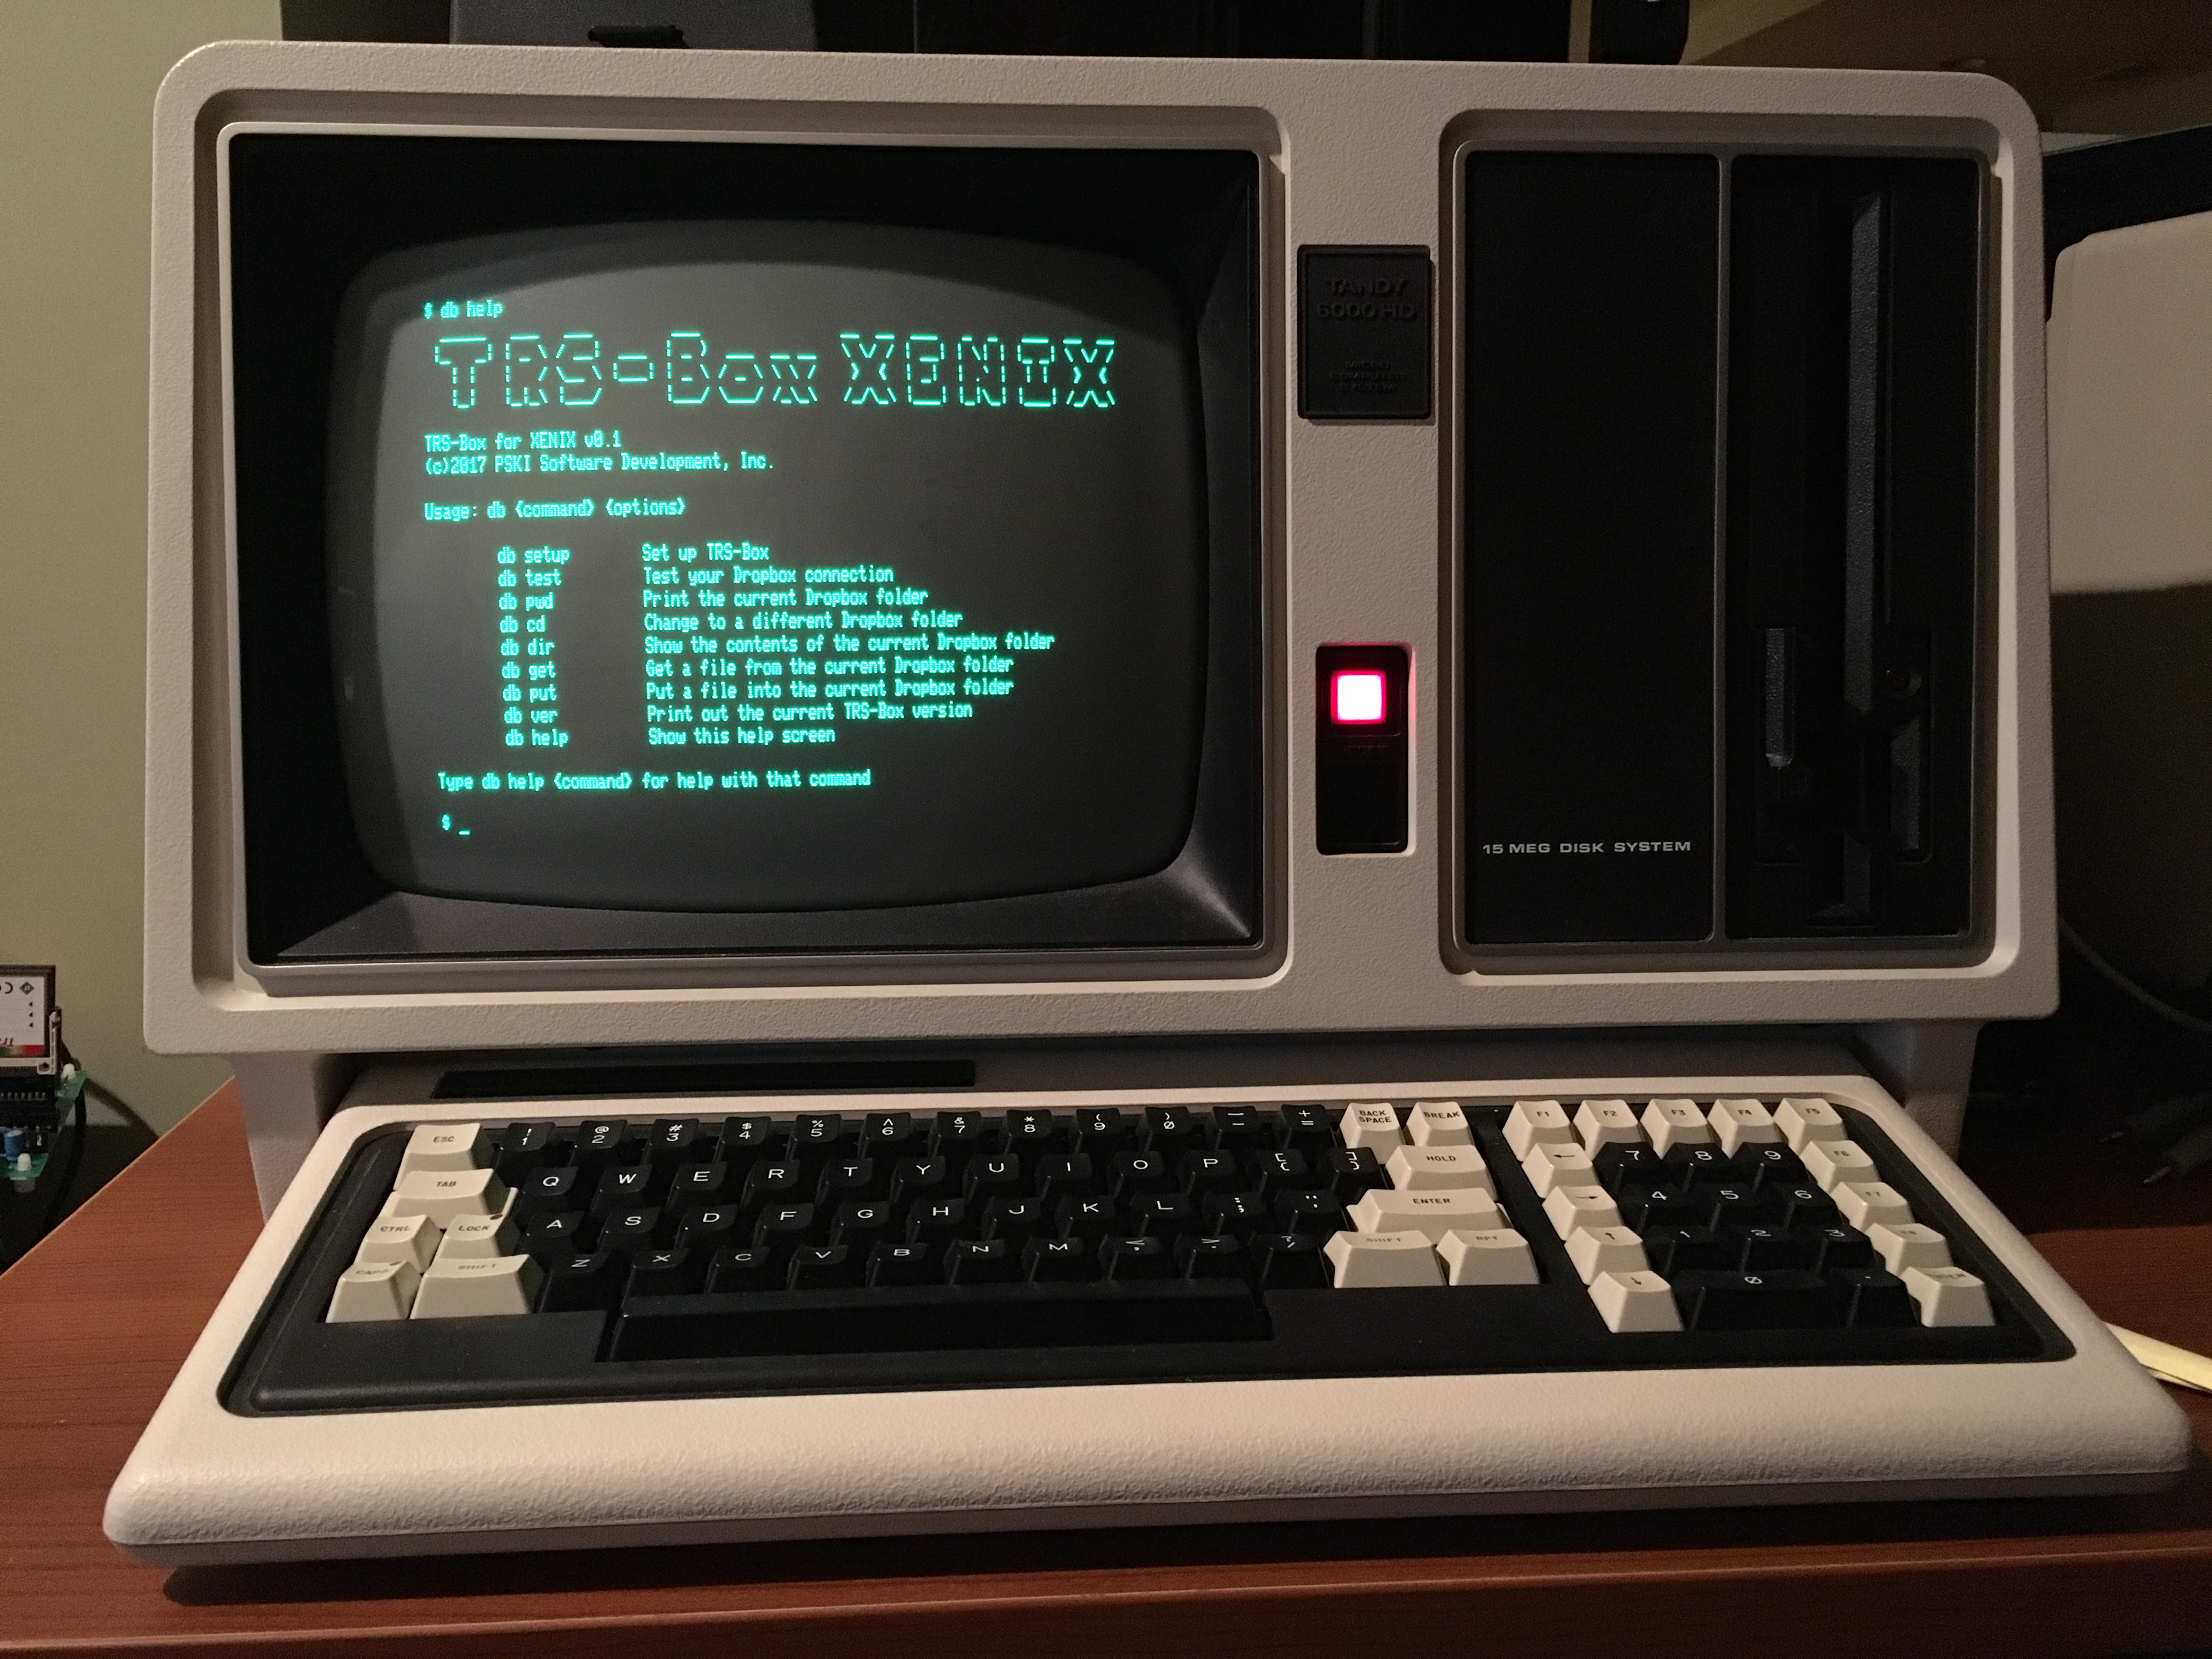 Tandy 6000 running TRS-Box XENIX with the ATC-1000 Serial-IP converter.